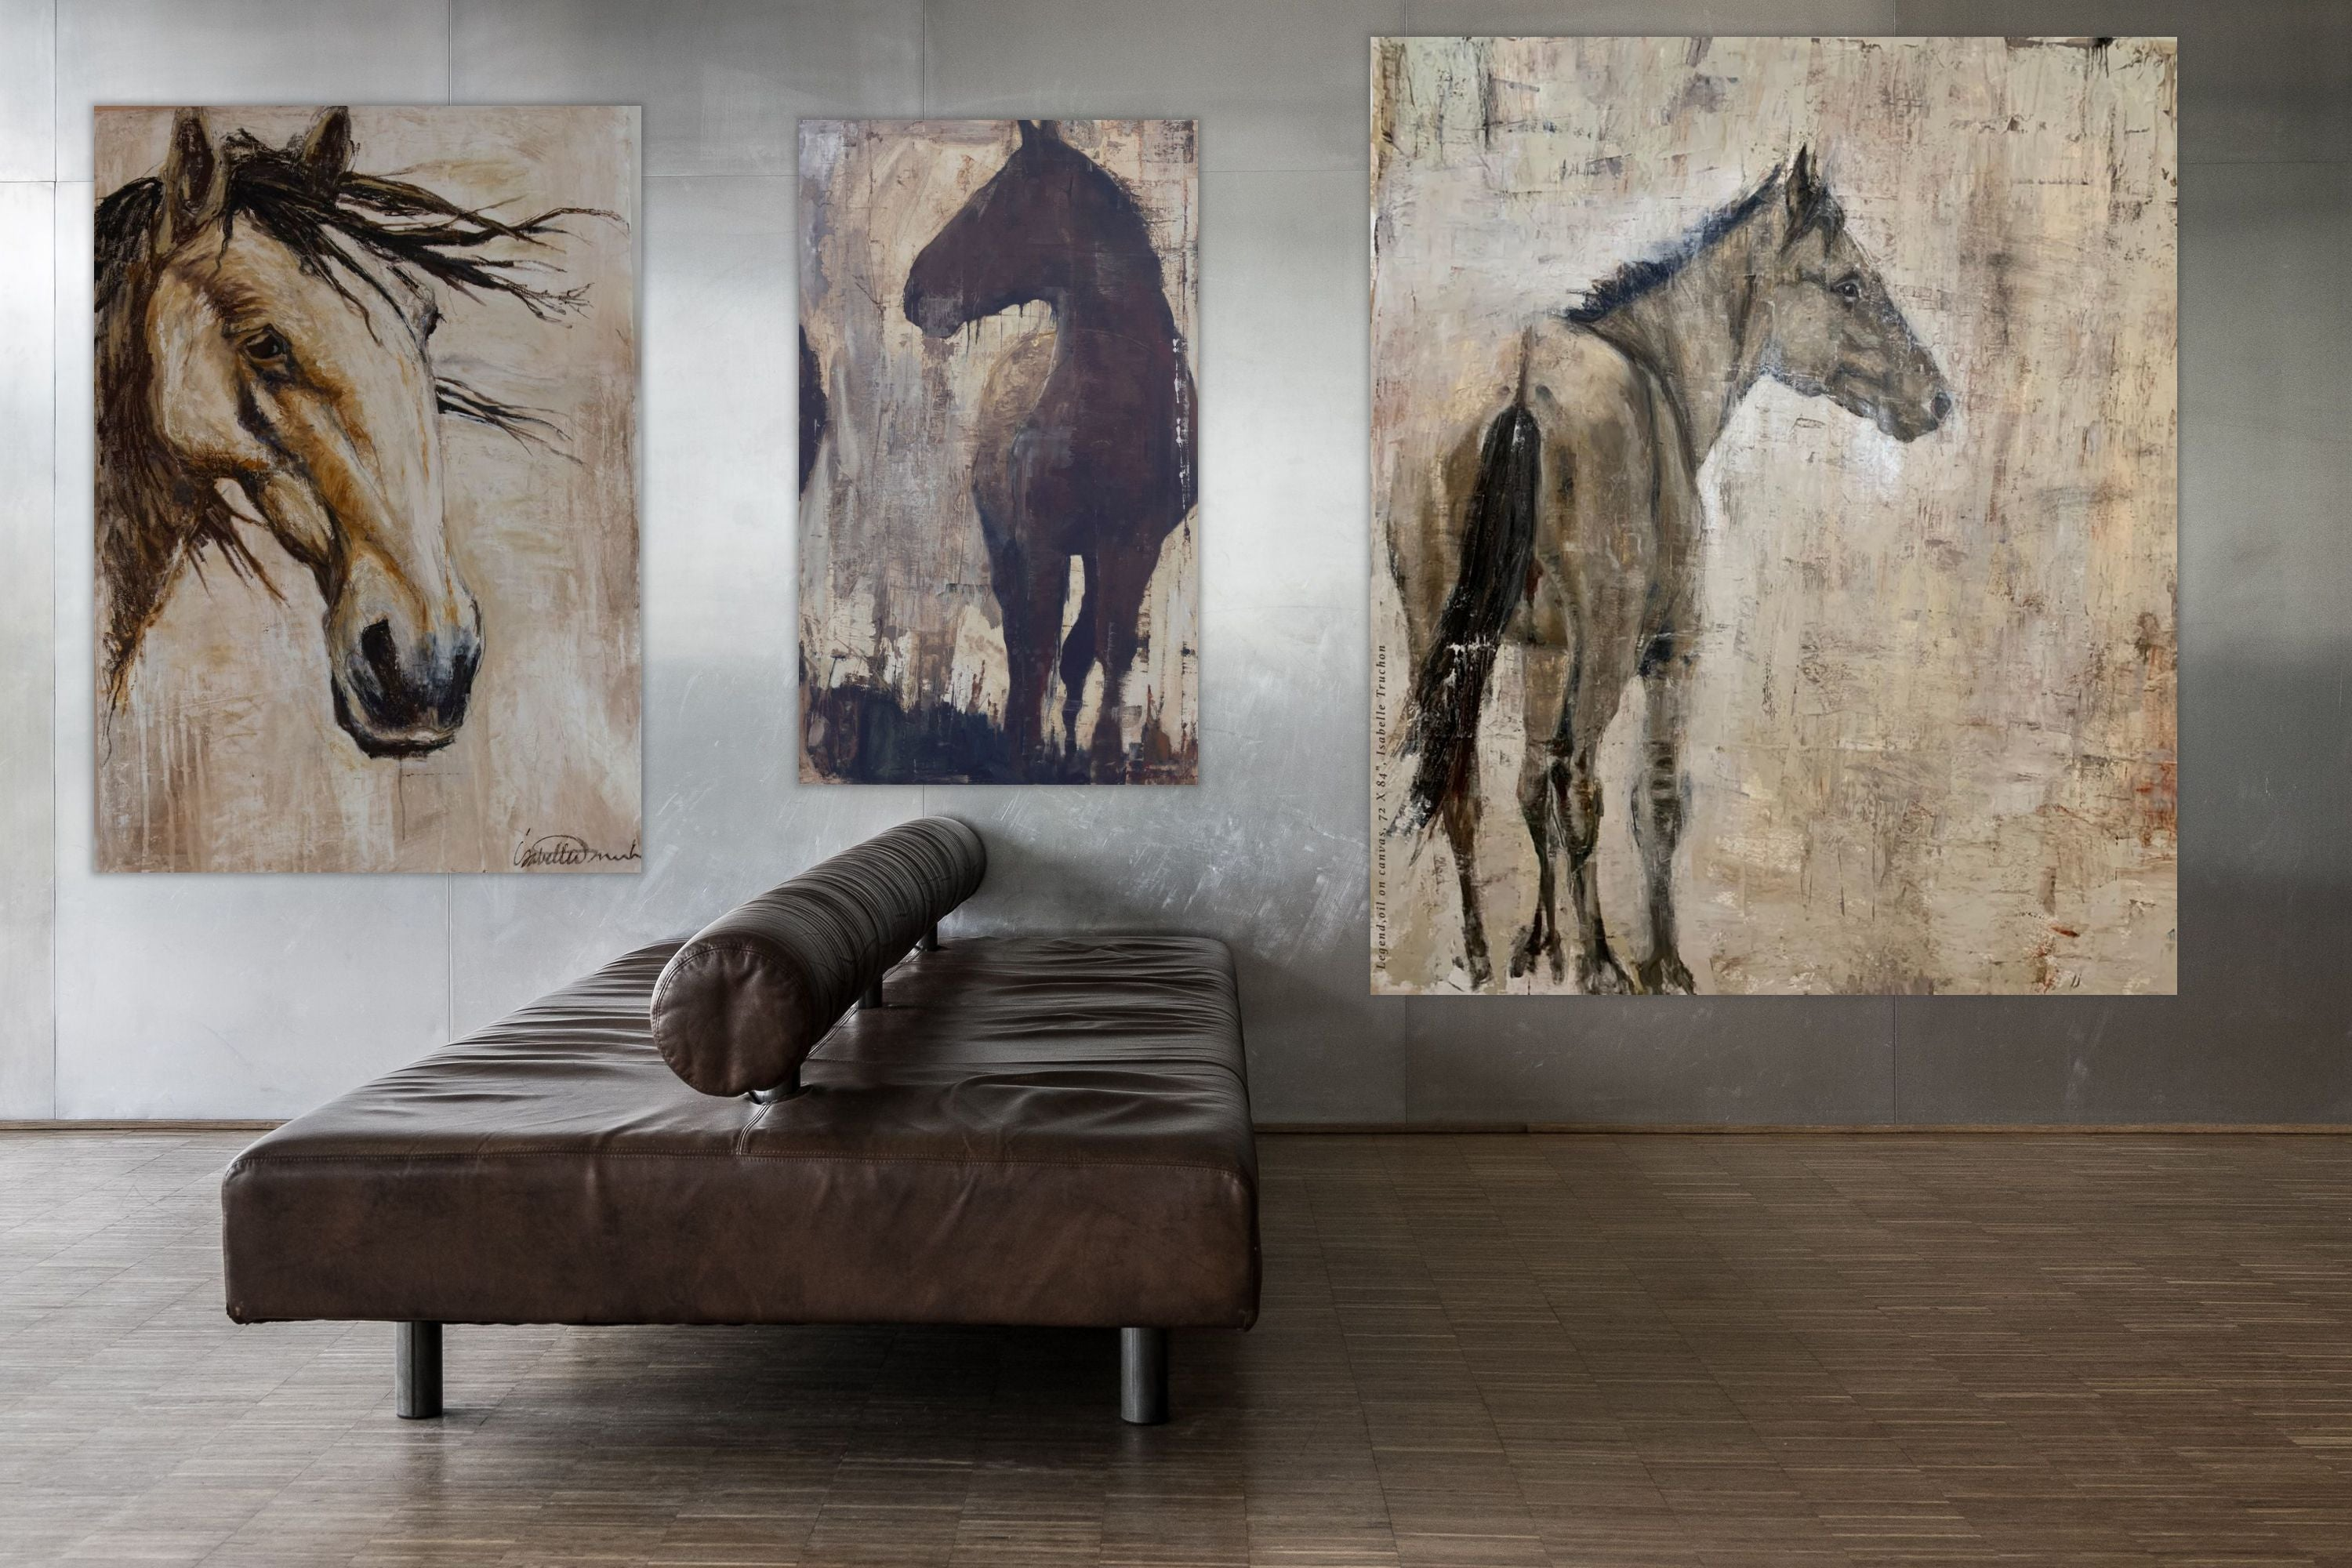 A moment of reflection for this wild mustang stallion. Or perhaps, he simply allows me to observe him, as he looks on at his herd nearby. A showpiece for any wall in your home or office.